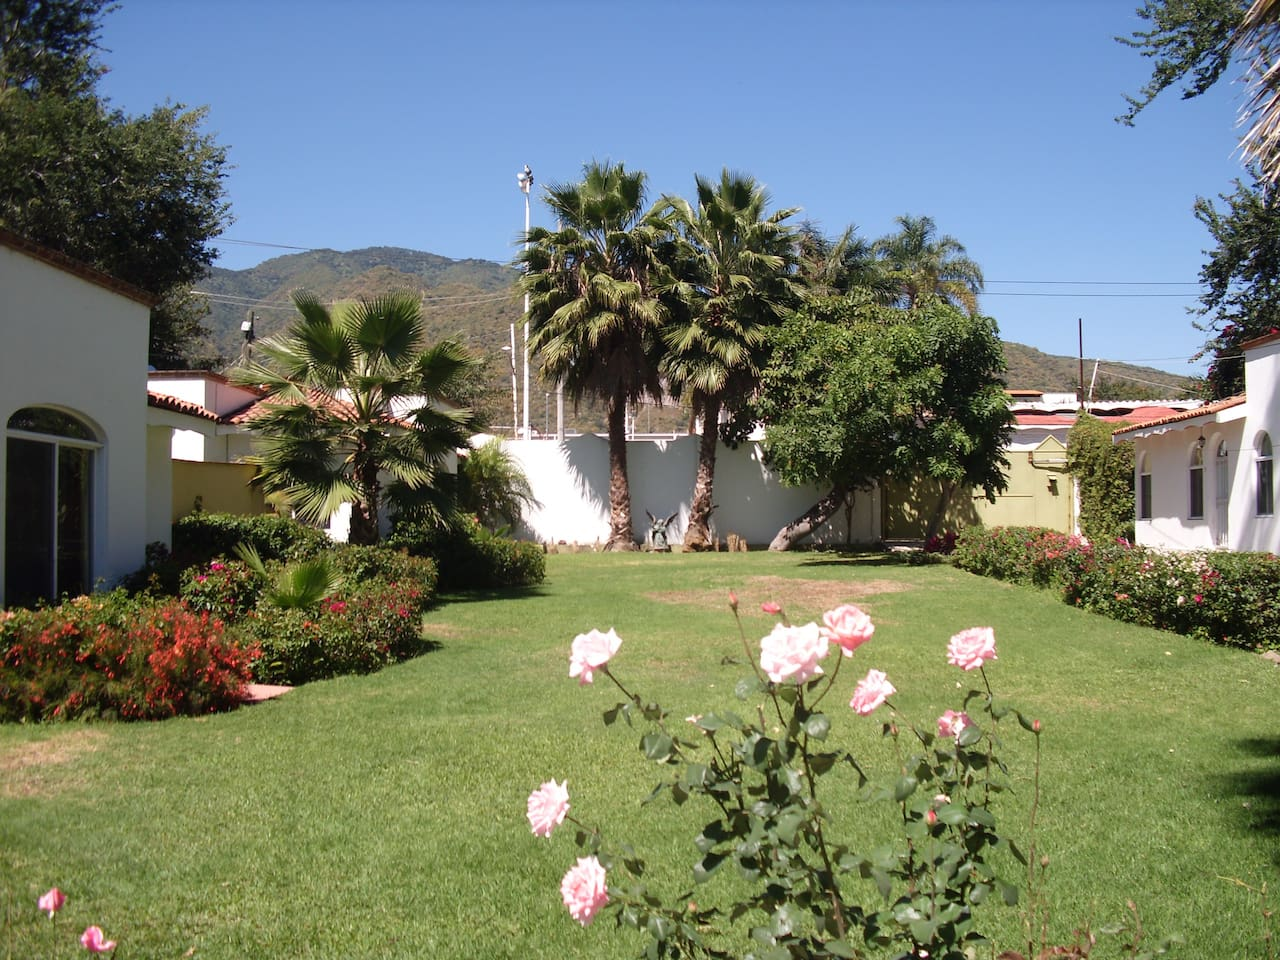 Common gardens with Casita A on the far left